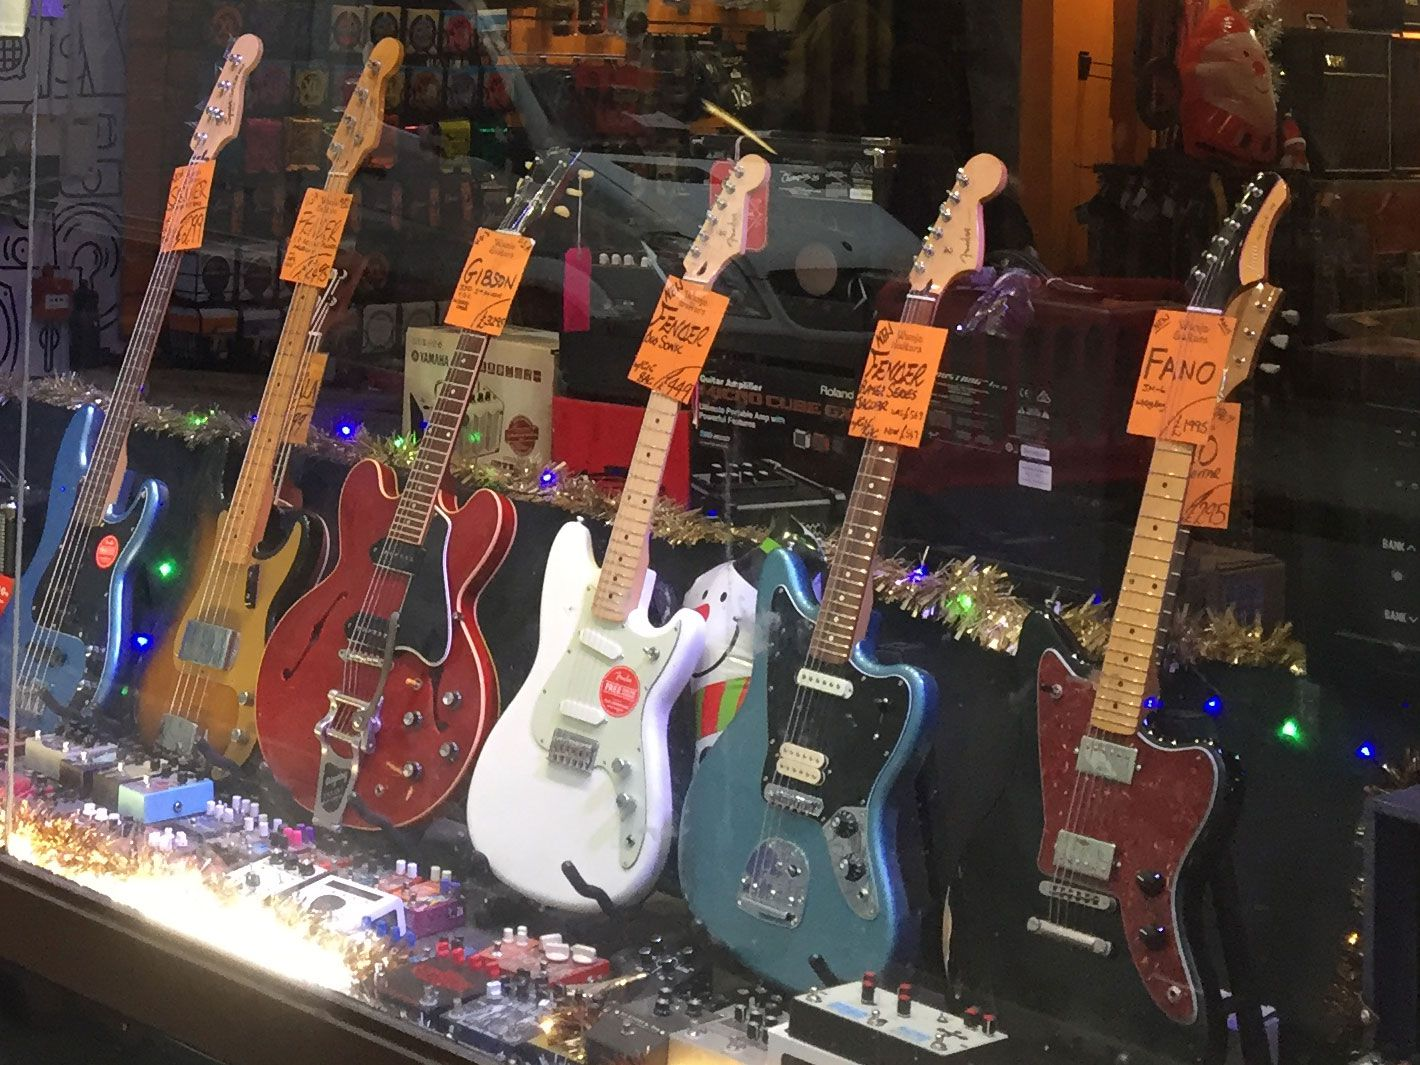 Guitars in a shop window on Denmark Street, London